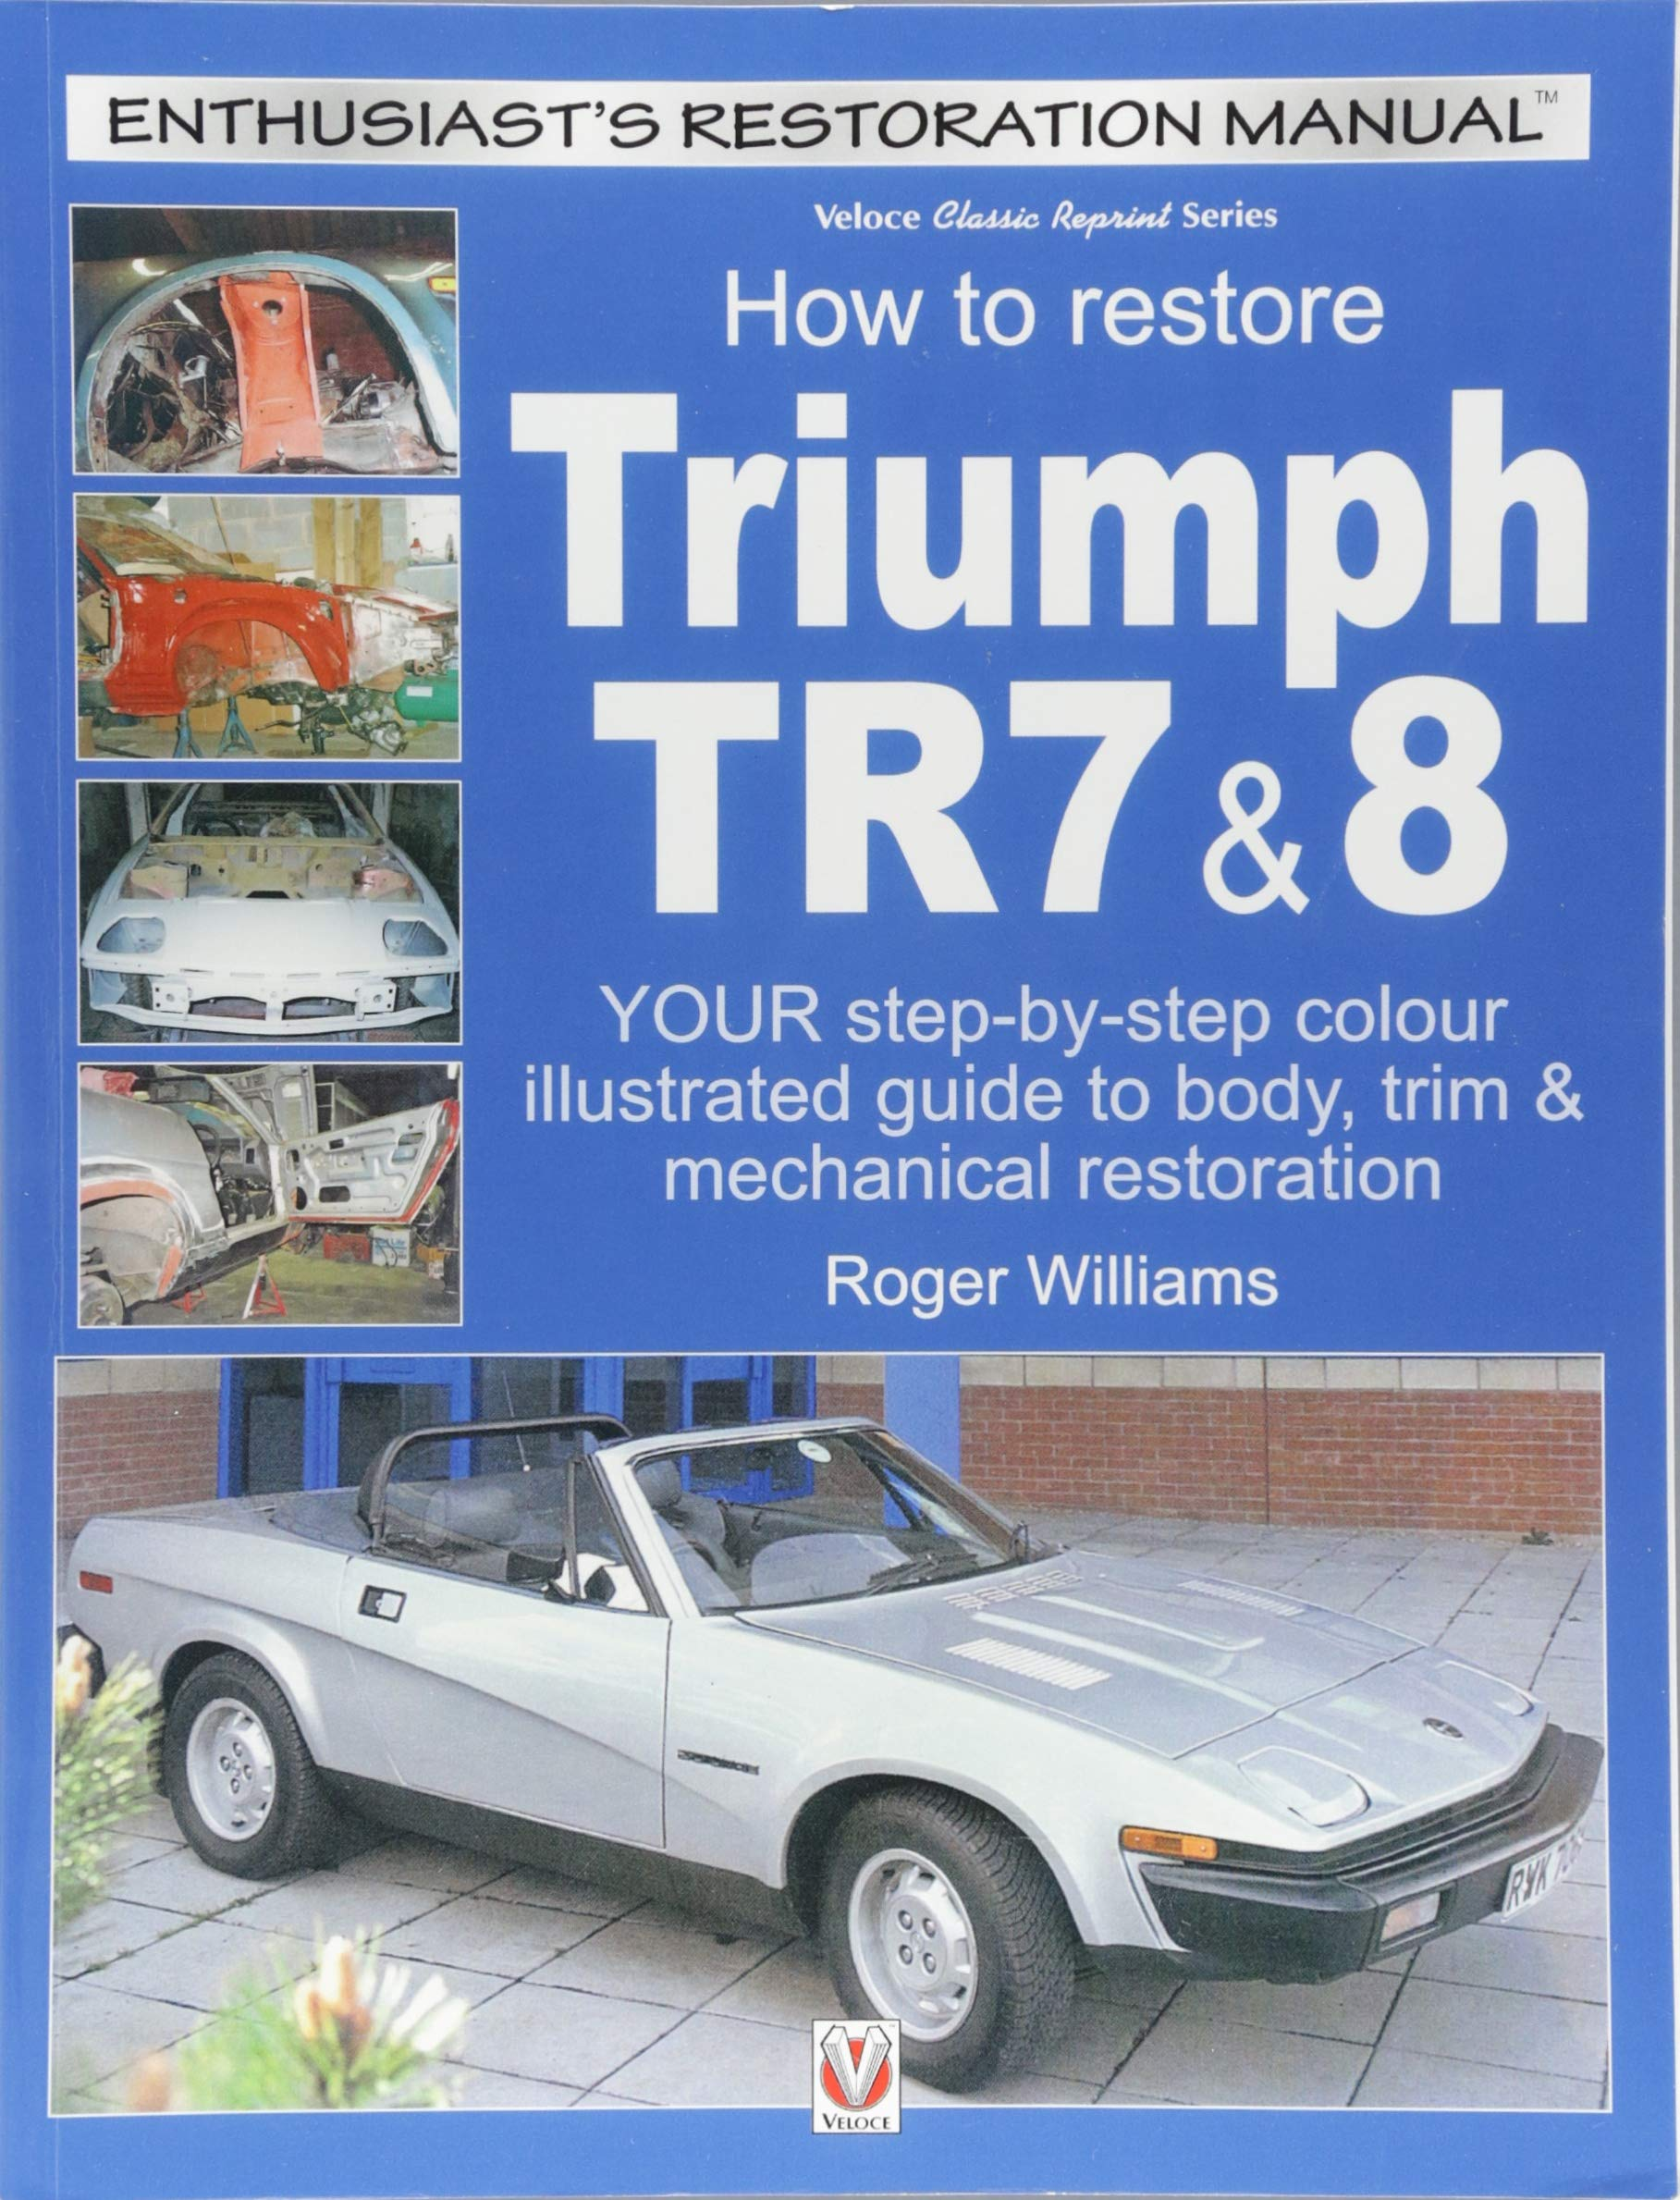 How To Restore Triumph Tr7 8 Enthusiasts Restoration Manual Tr8 Wiring Diagram Roger Williams 9781787112520 Books